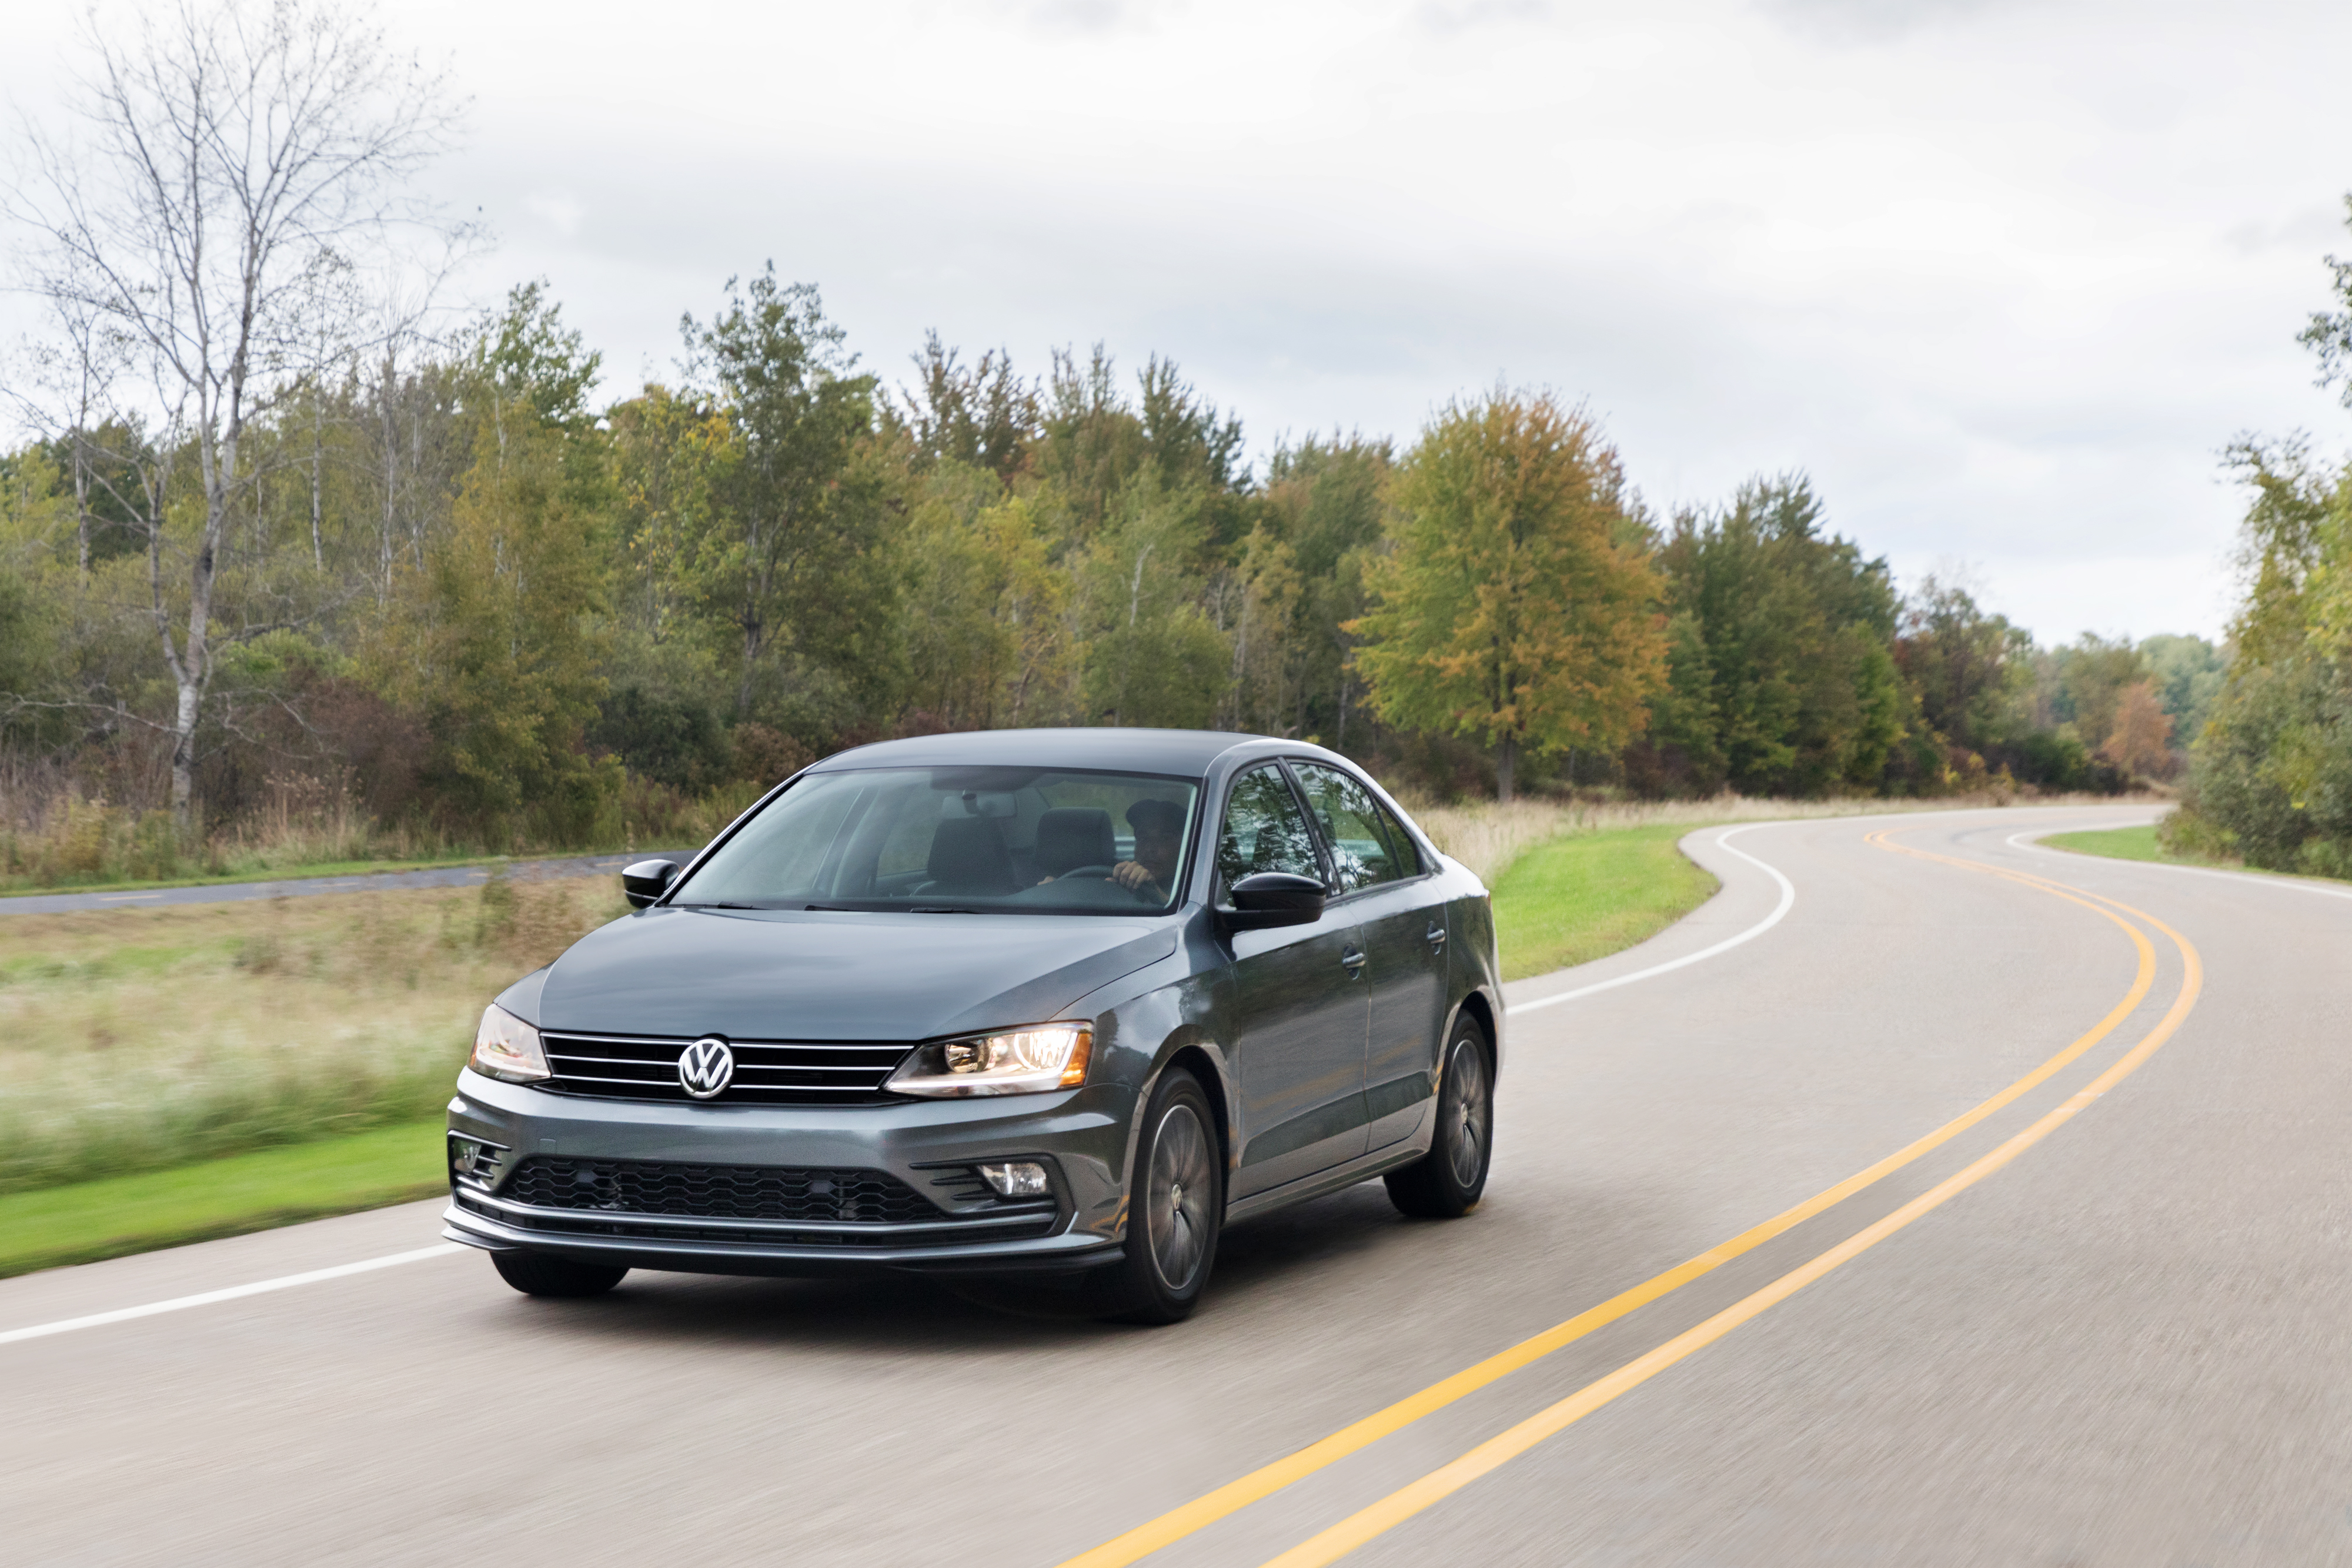 VOLKSWAGEN JETTA RANKED MOST APPEALING PACT CAR IN J D POWER